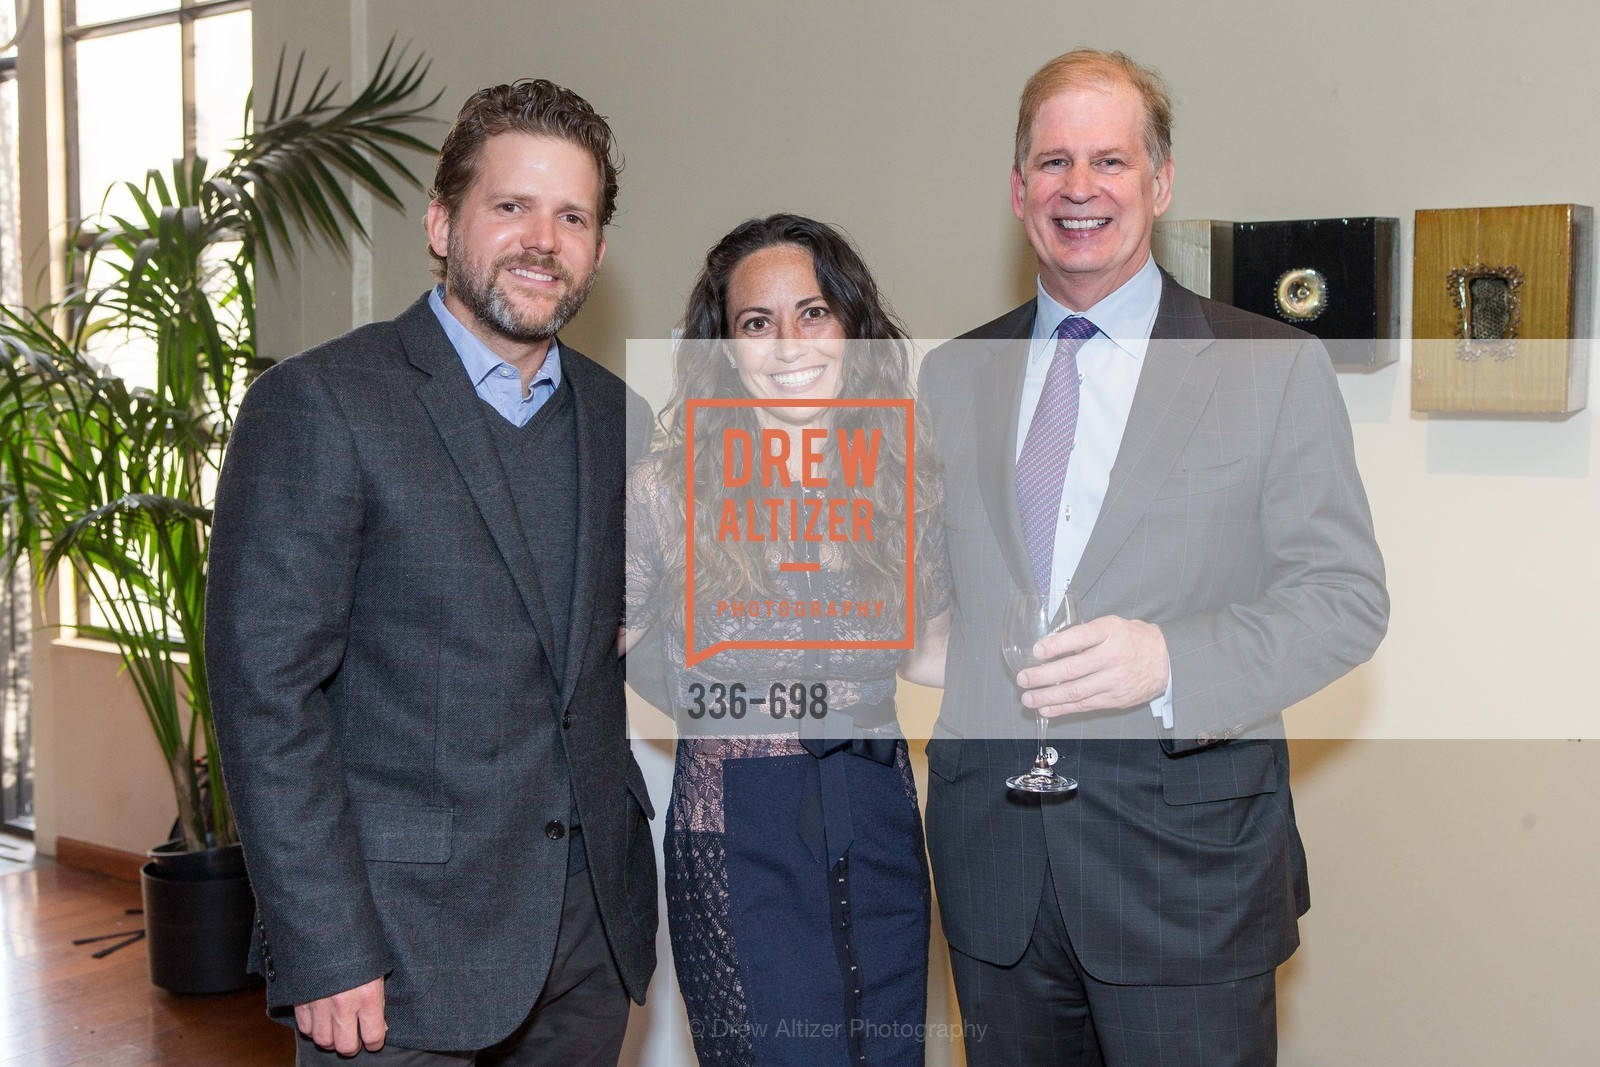 Peter Dawes, Nicole Dawes, Robert Fetherstonehaugh, EWG's 6th Annual Earth Dinner, US, May 6th, 2015,Drew Altizer, Drew Altizer Photography, full-service event agency, private events, San Francisco photographer, photographer California